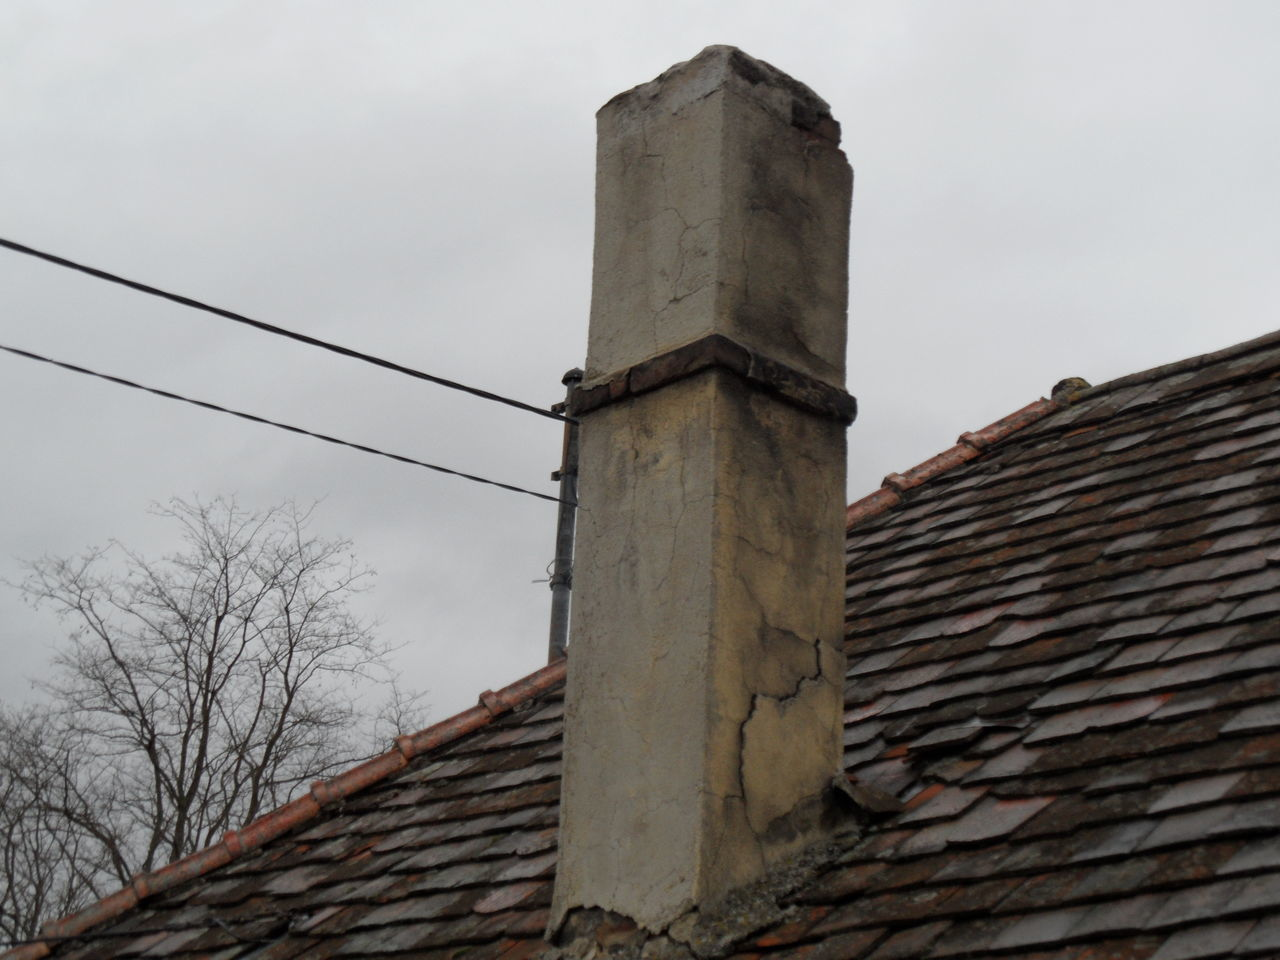 Abandoned Abandoned Buildings Architecture Broken Building Built Structure Chimney Day House Roof No People Old House Outdoors Overgrown Roof Schornstein Sky Tree Weathered